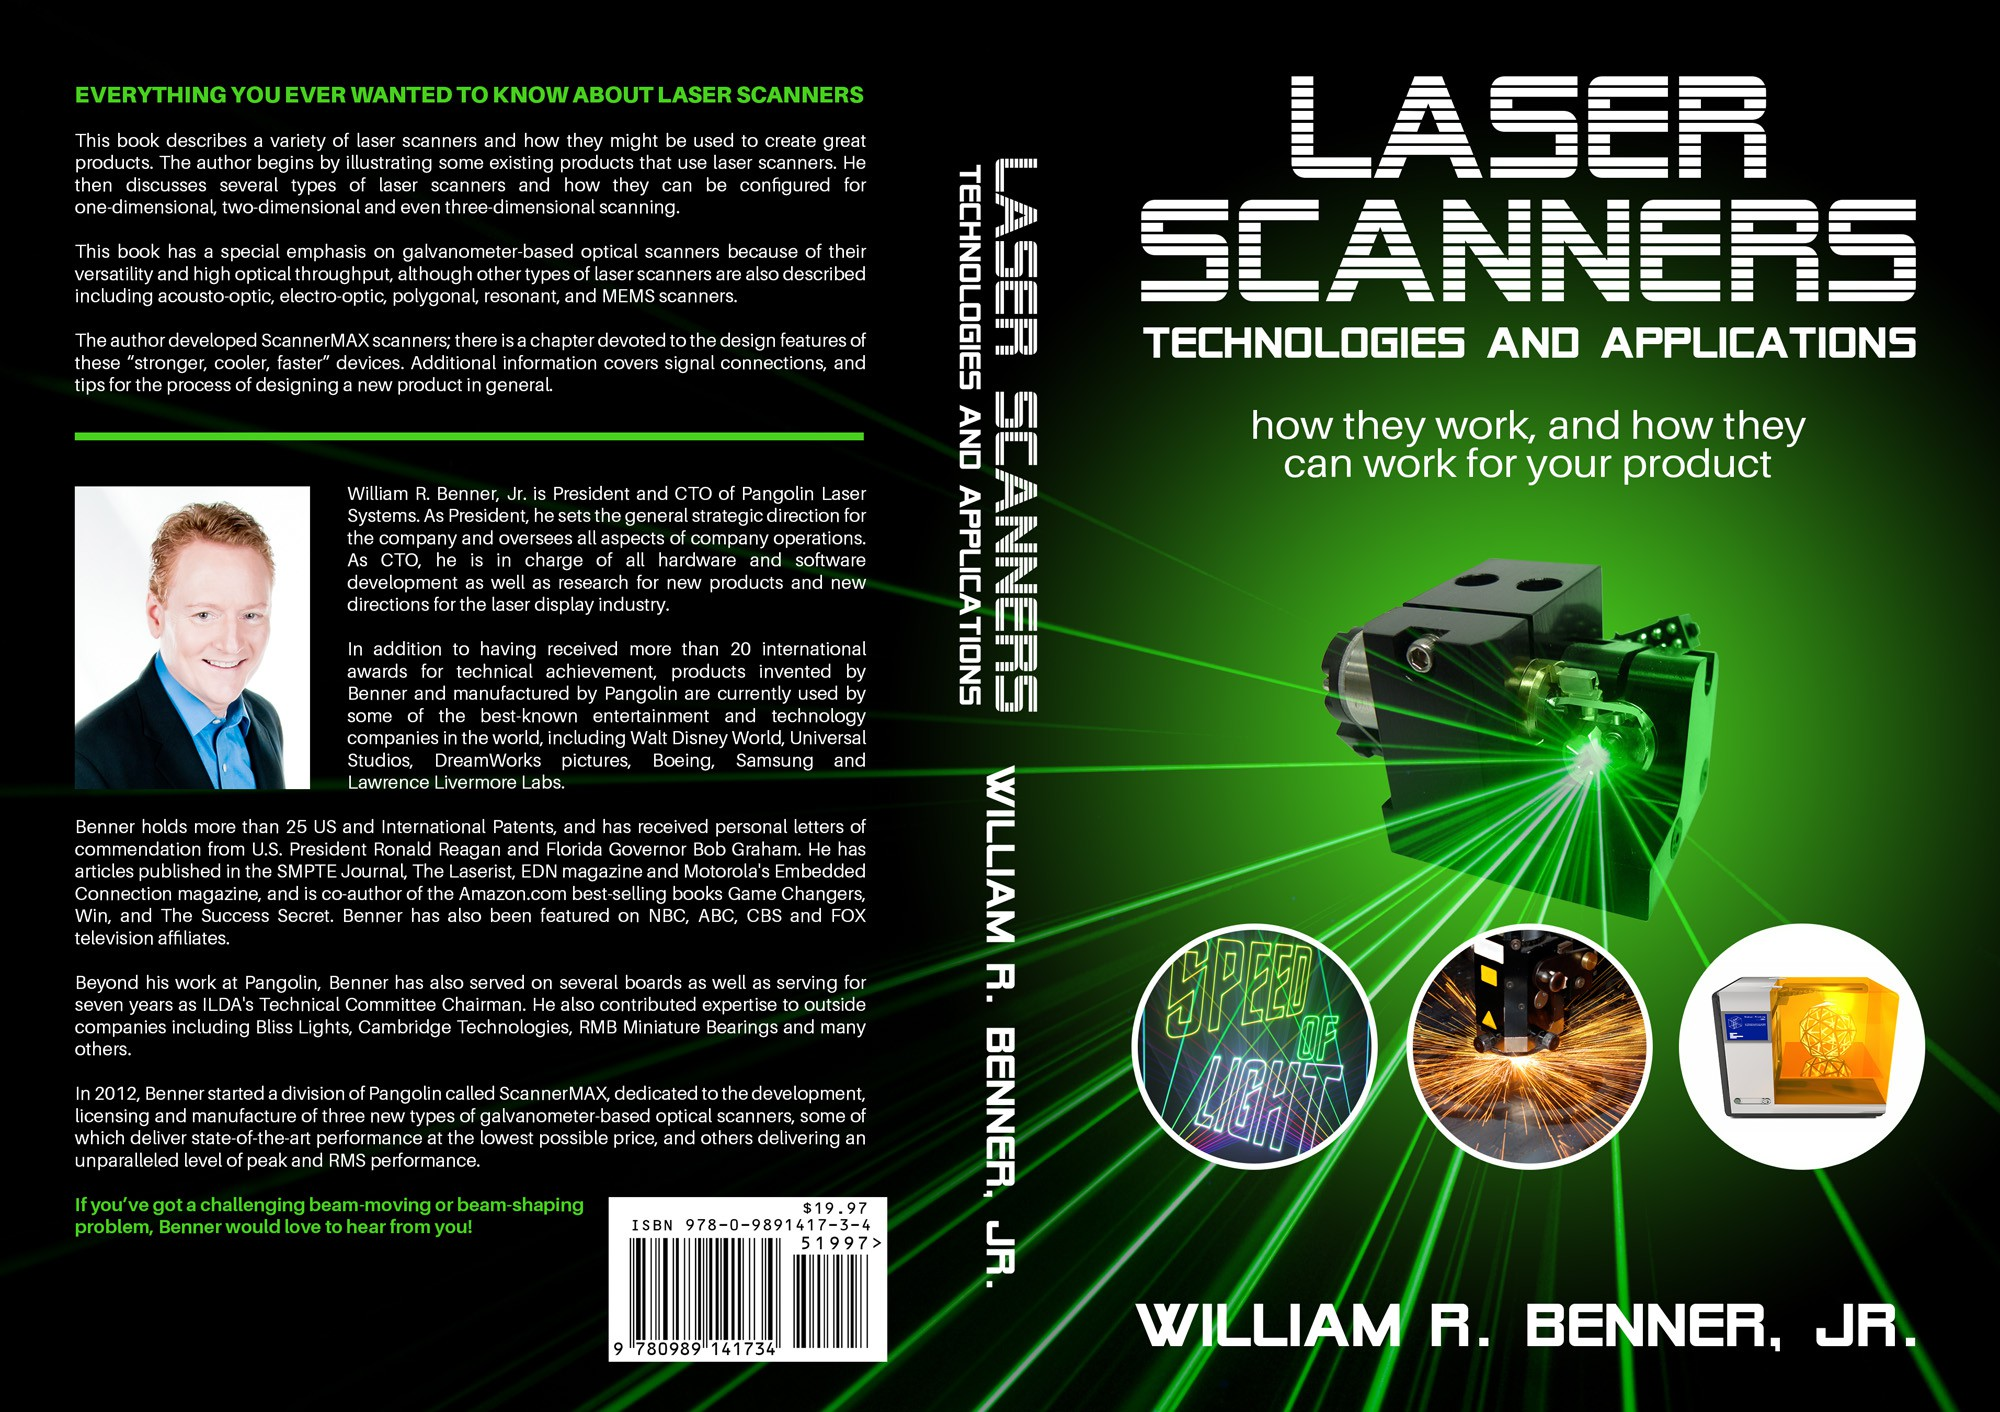 Create an excellent, clean and compelling book cover for a book about laser scanners